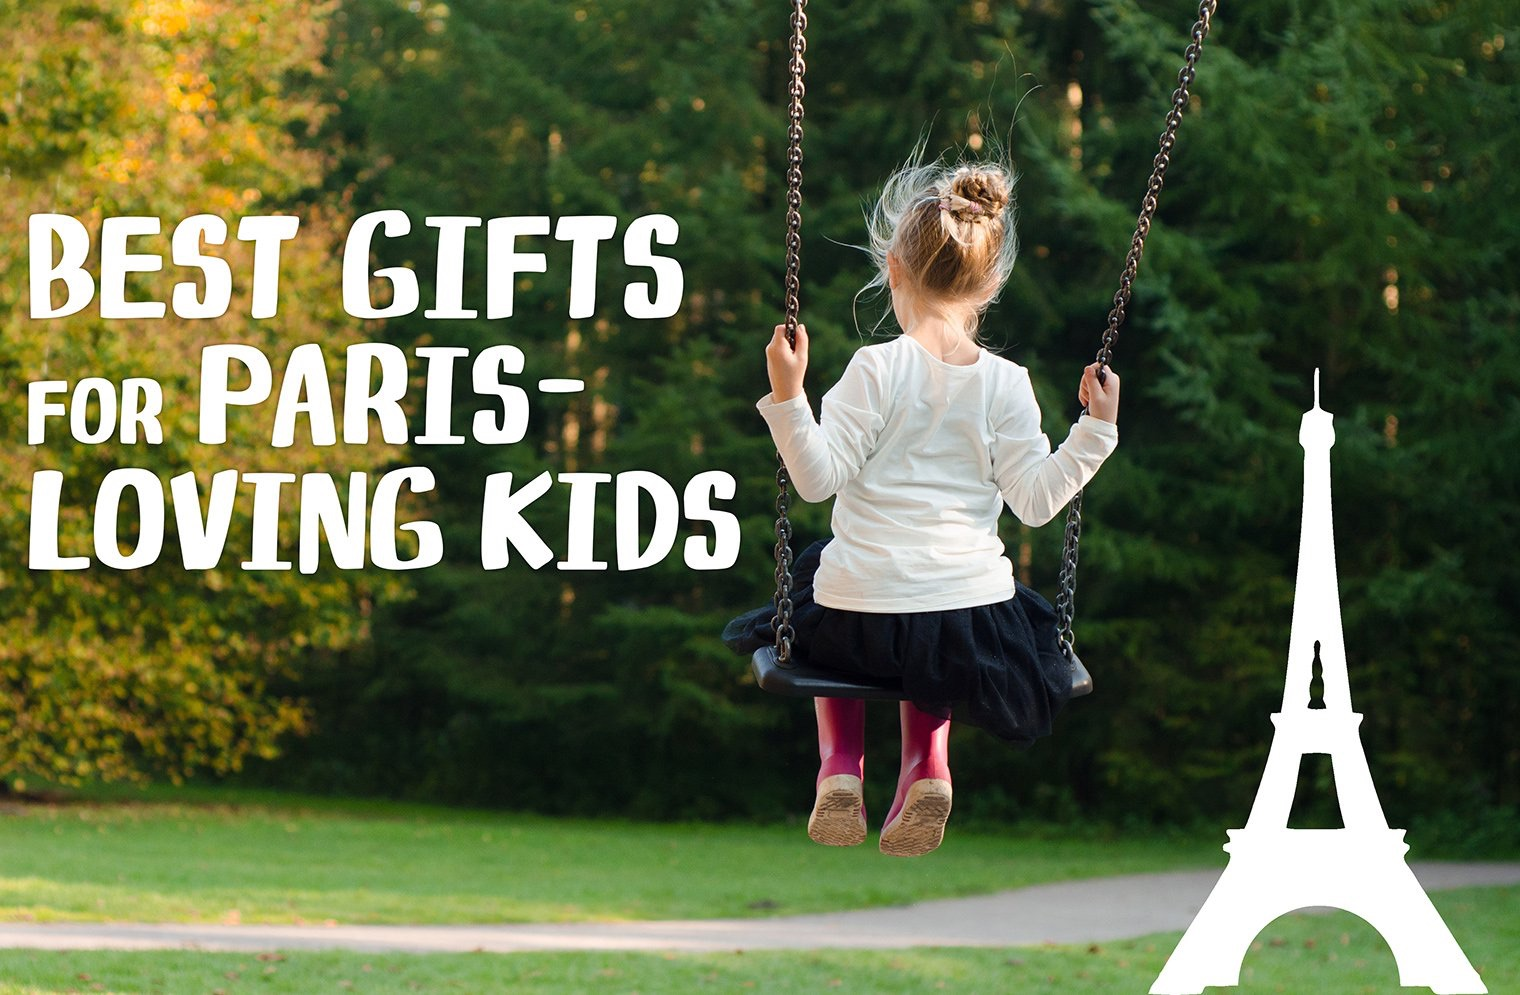 Best Gifts for Paris-Loving Kids